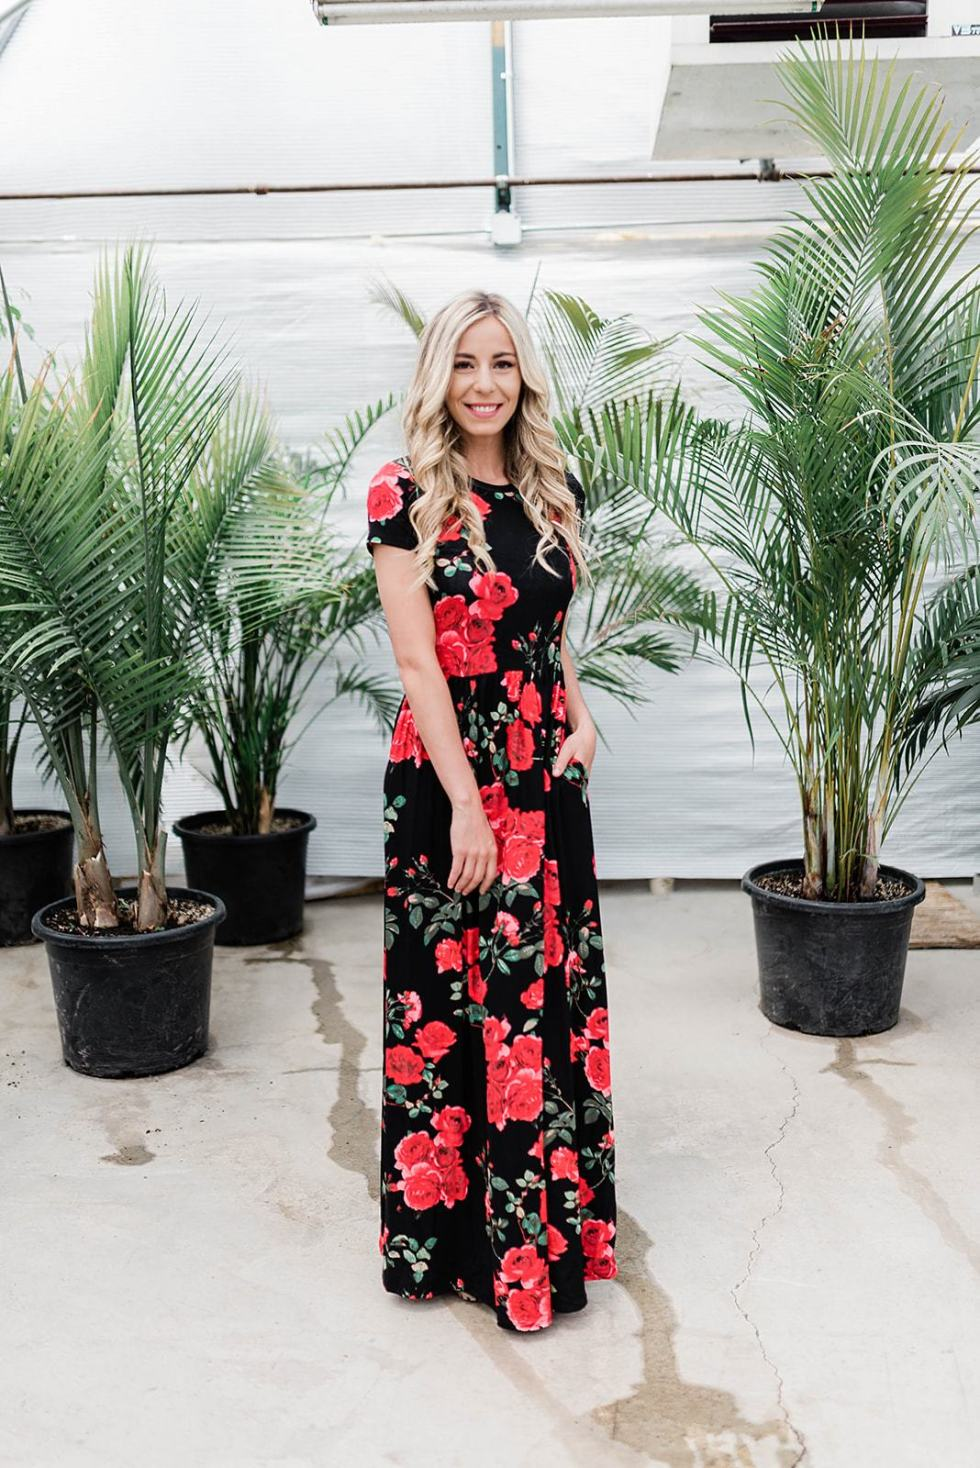 Cleo Madison Modest Black & Red Floral Dress with Sleeves